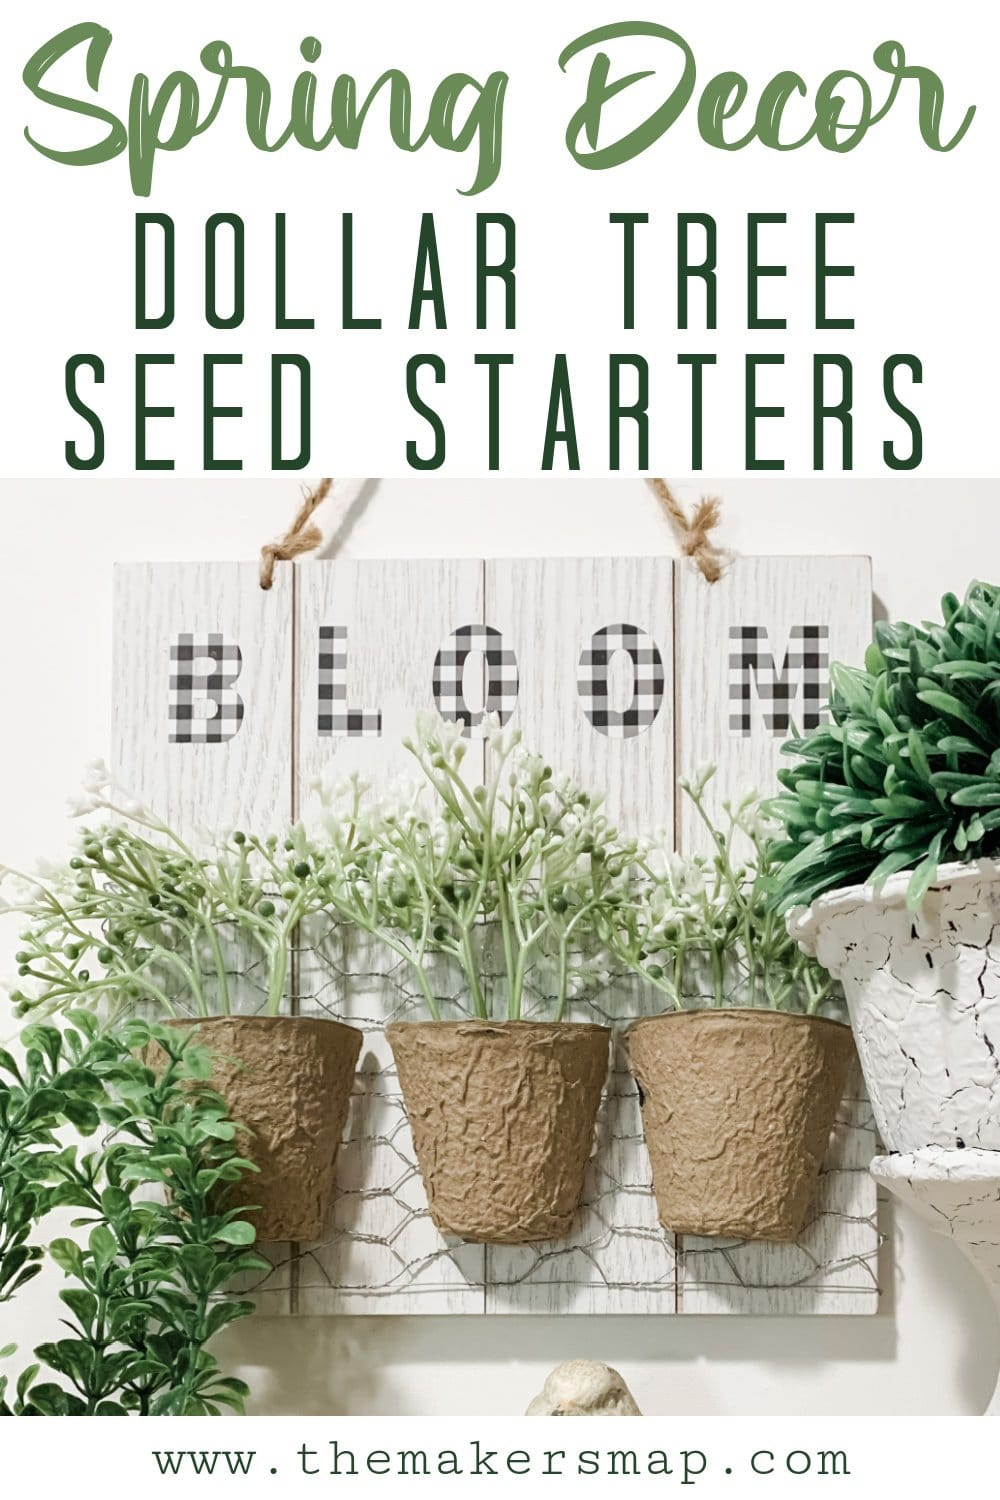 DIY Spring Decor with Seed Starters